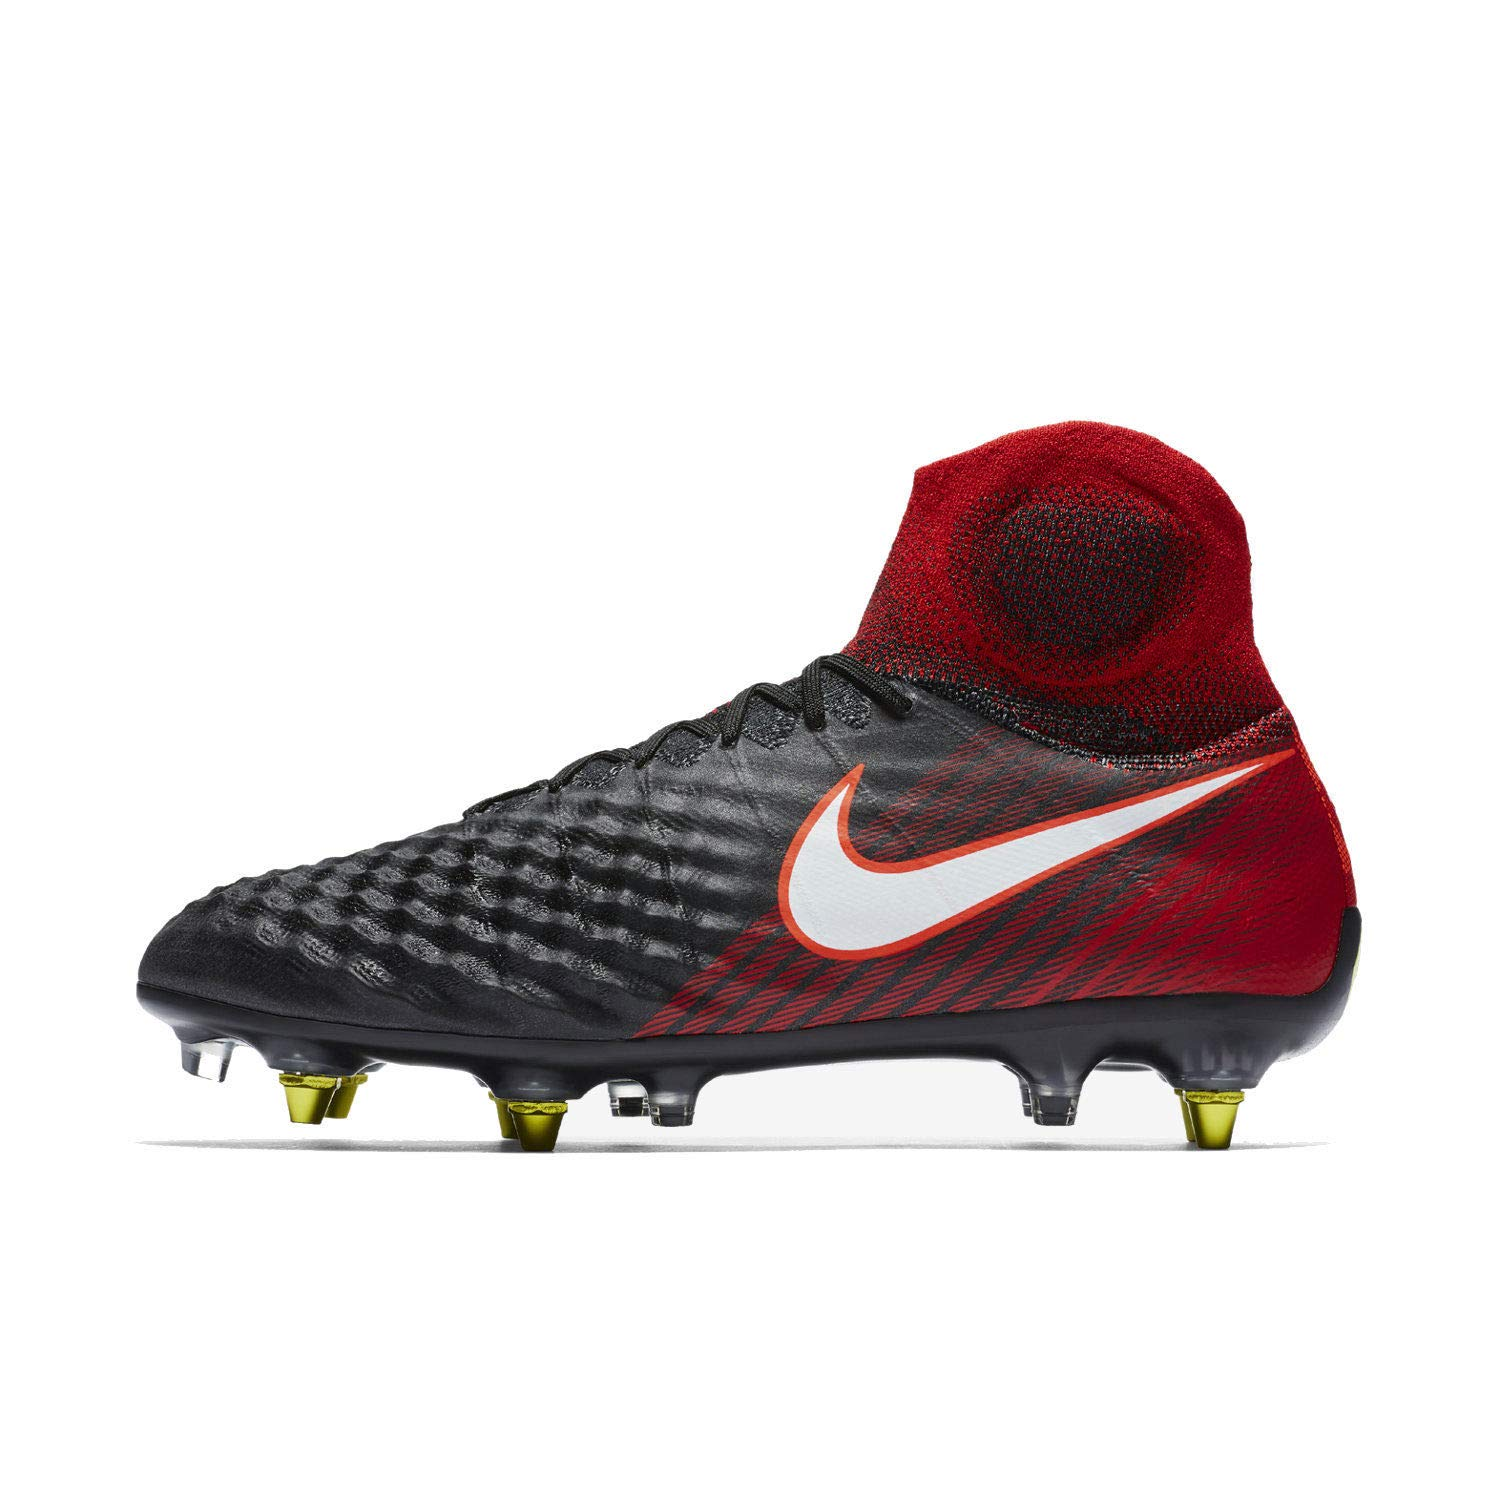 vista previa de diferentemente distribuidor mayorista Amazon.com | Nike Magista Obra II SG Pro AC Black/RED Men's ...